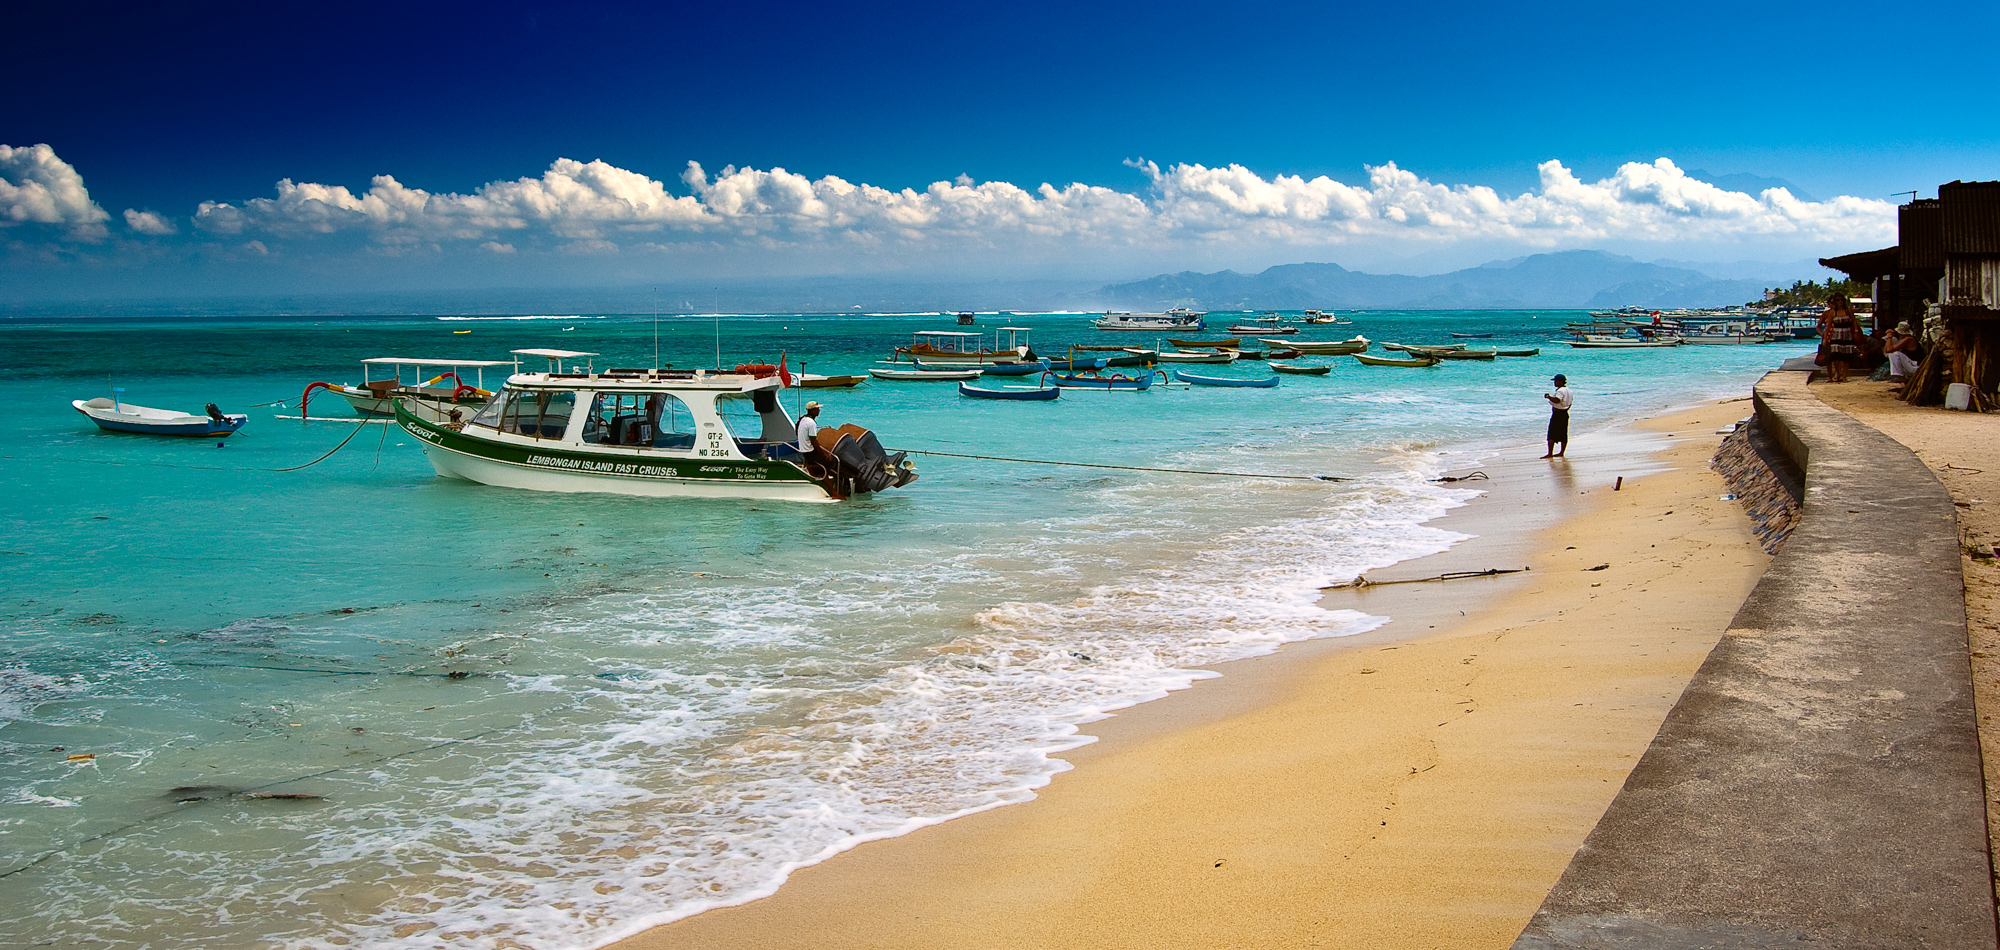 Lying across the Badung Strait from Sanur is Bali's premiere scuba diving destination - the clear wa